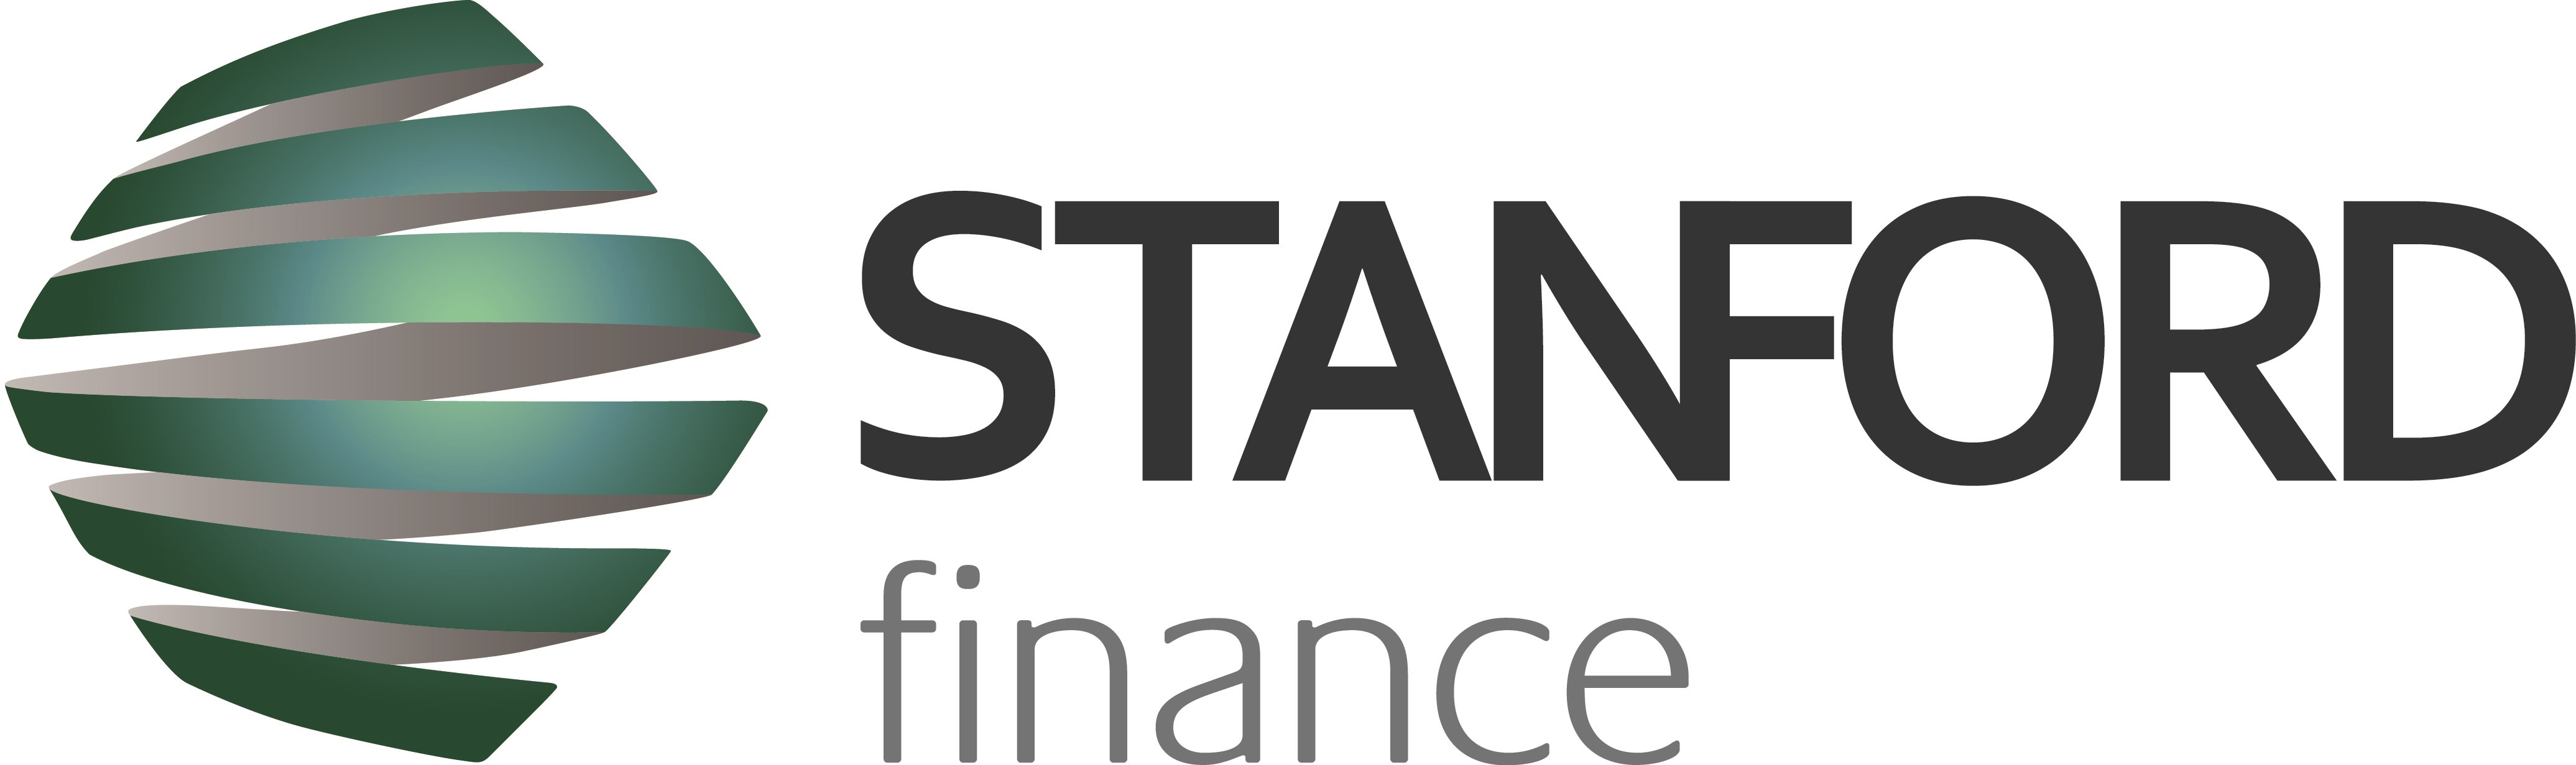 Stanford Finance Corporation